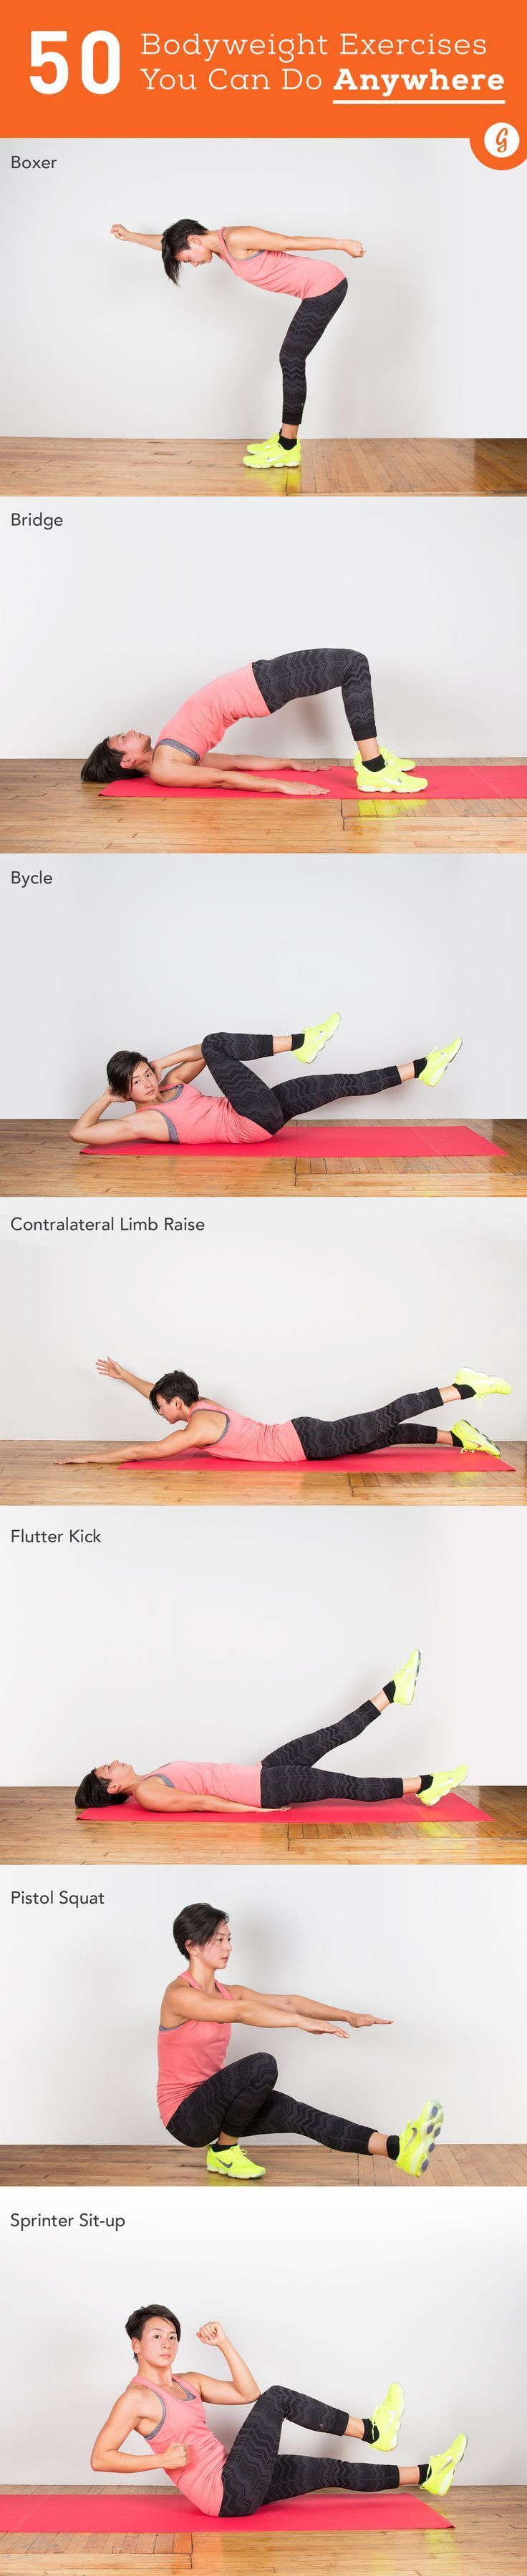 50 Bodyweight Exercises You Can Do Anywhere — Do these bodyweight moves anytime, anywhere.